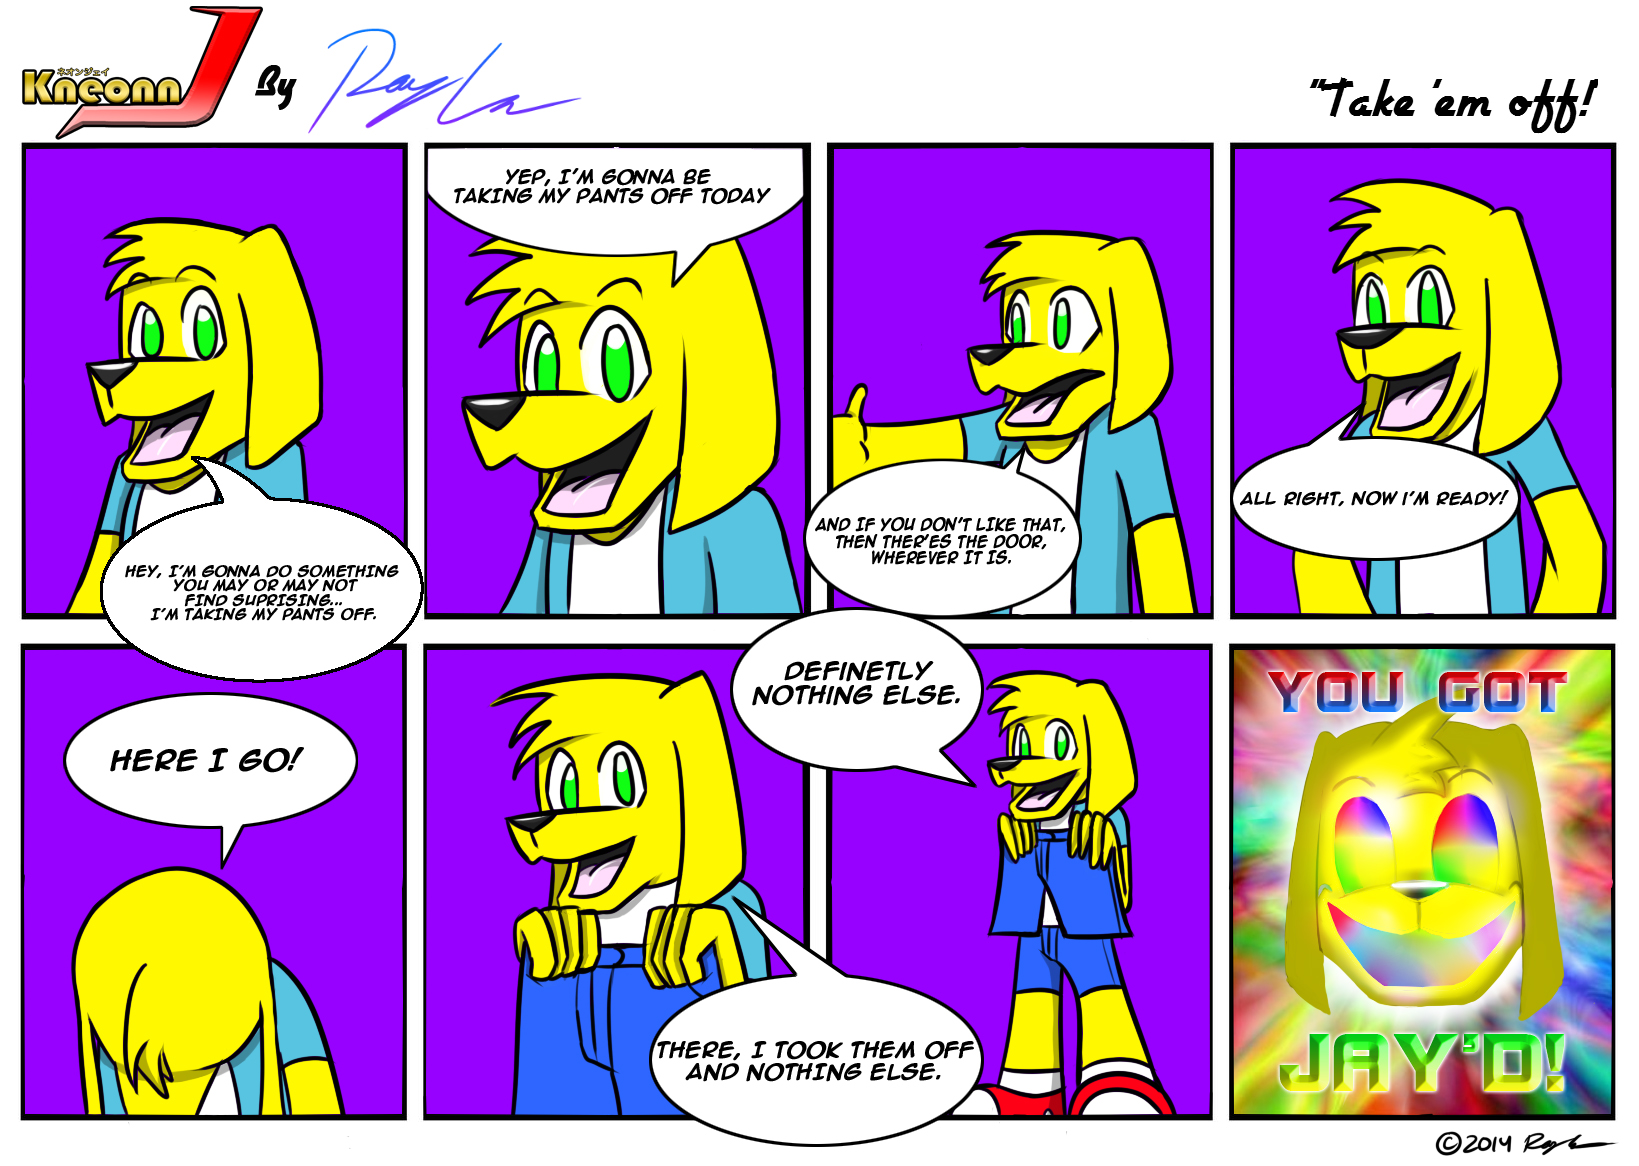 Kneonn J: The Comic #2